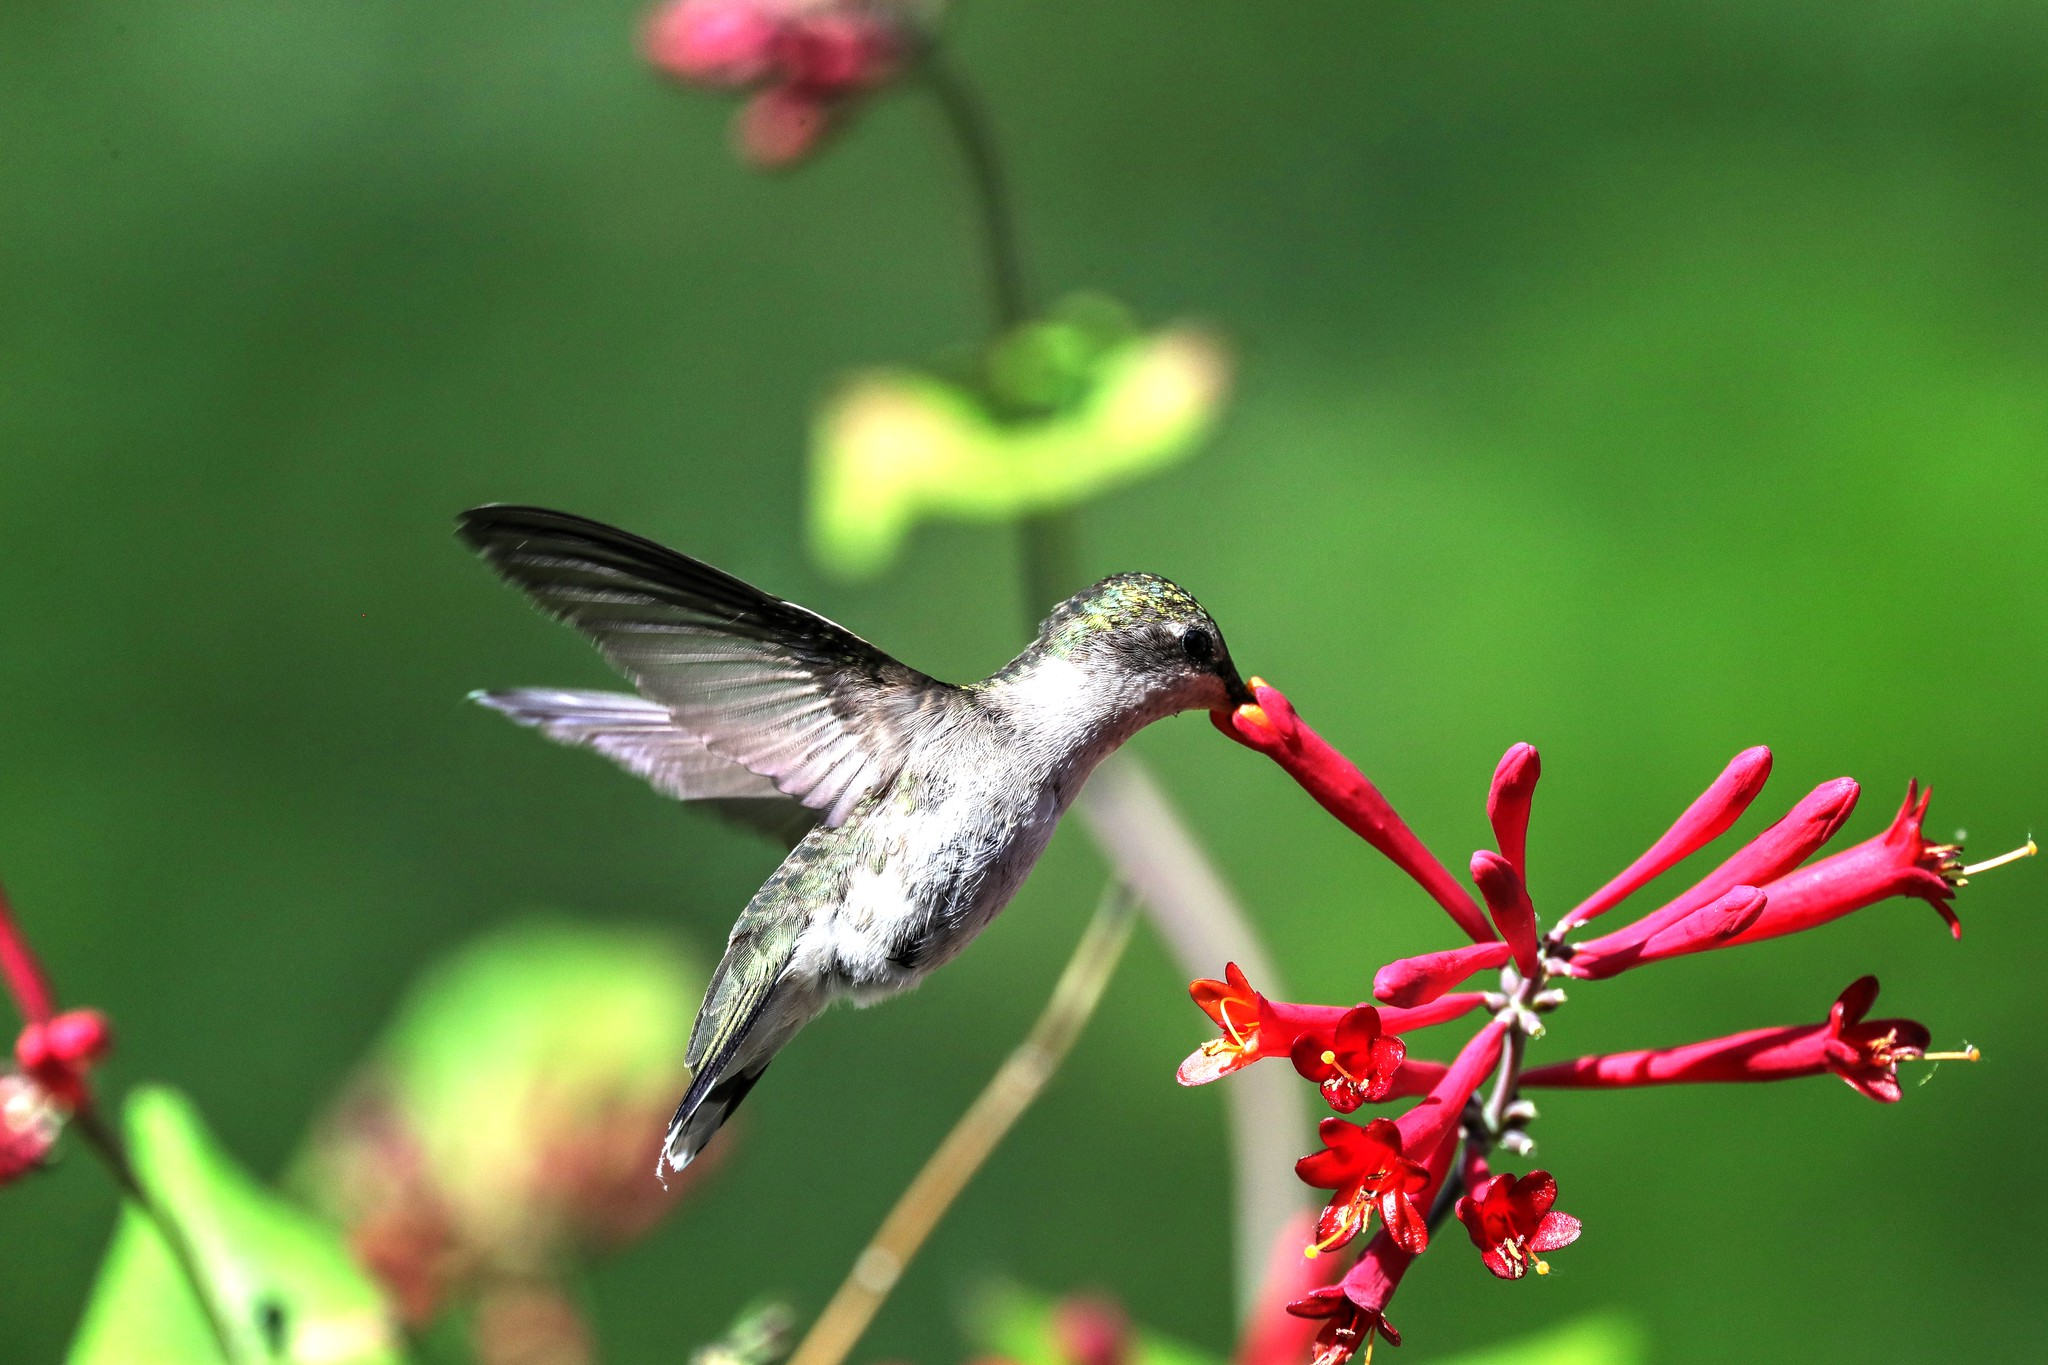 Keep Your Eyes Peeled, Thousands Of Hummingbirds Are Headed Right For Connecticut During Their Migration This Spring